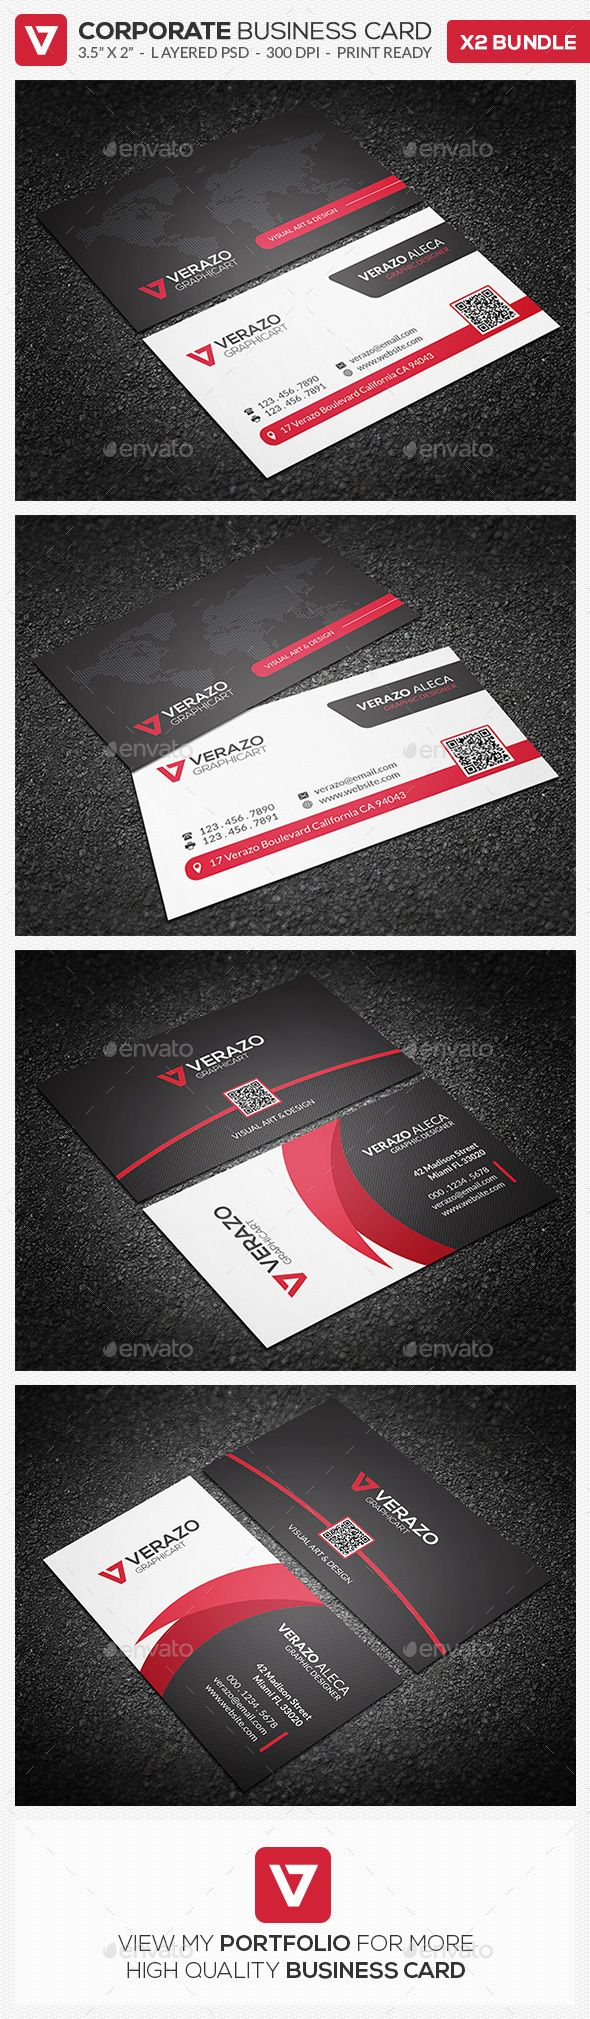 Best High Quality Business Cards Ideas On Pinterest Buy - Buy business card template